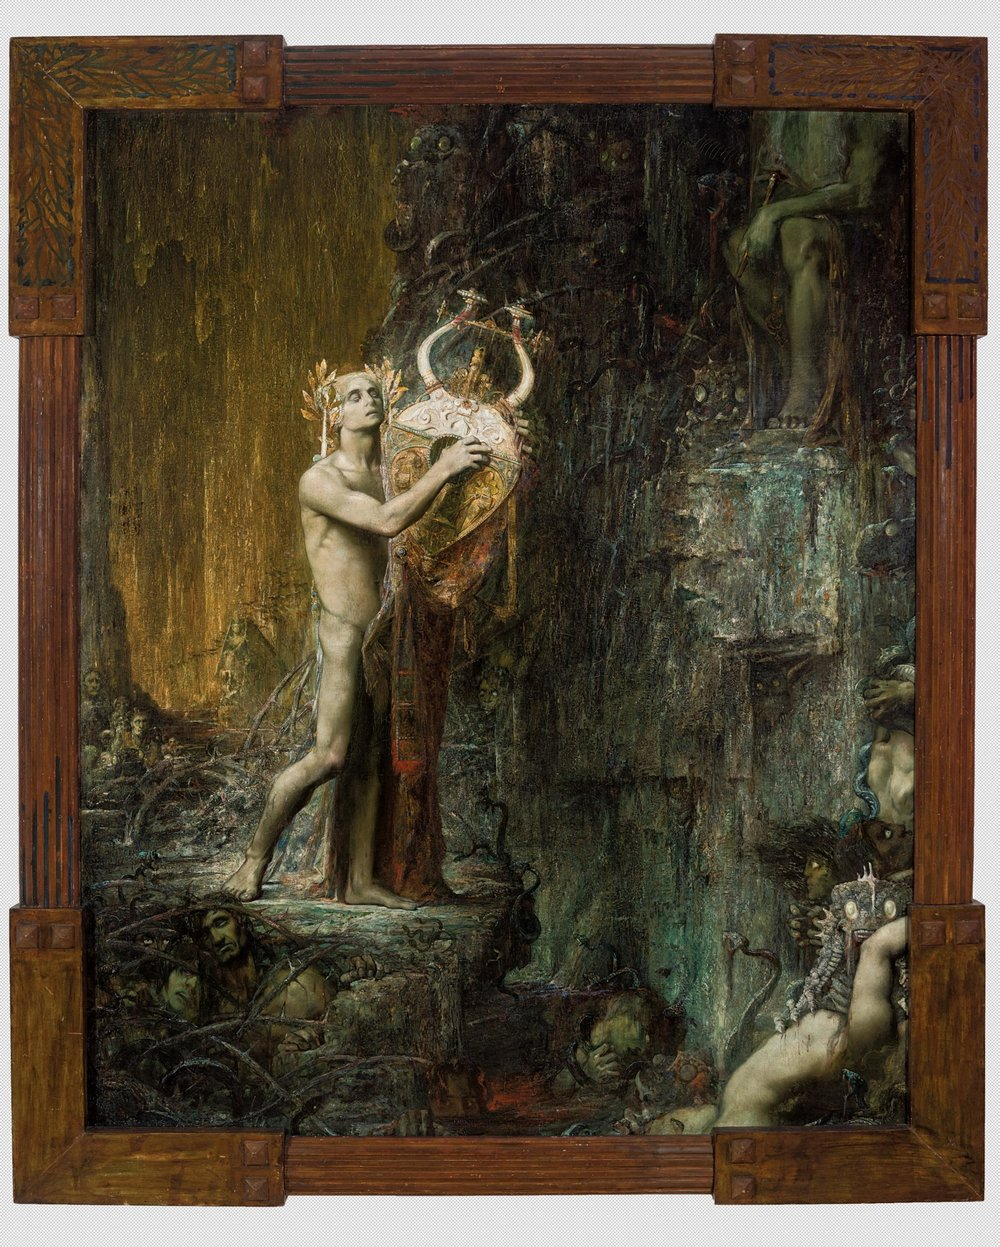 Pierre Amédée Marcel-Béronneau's 'Orpheus in Hades (Orphée)' (1897) PHOTO: CLAUDE ALMODOVAR/COLLECTION DU MUSEE DES BEAUX-ARTS, MARSEILLE